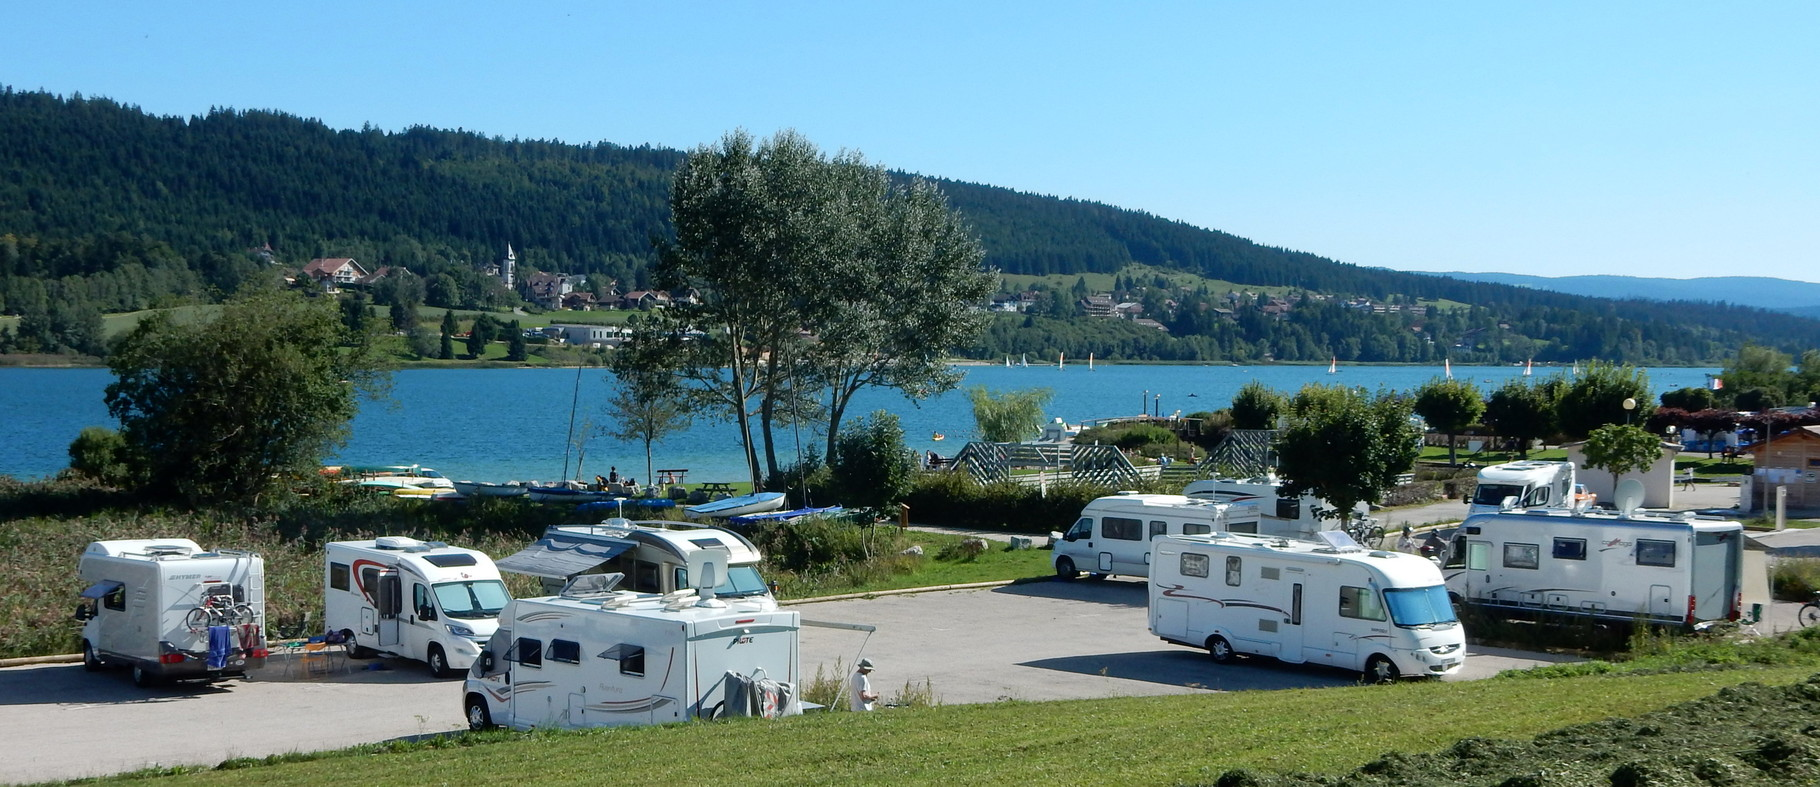 camping aire naturelle jura